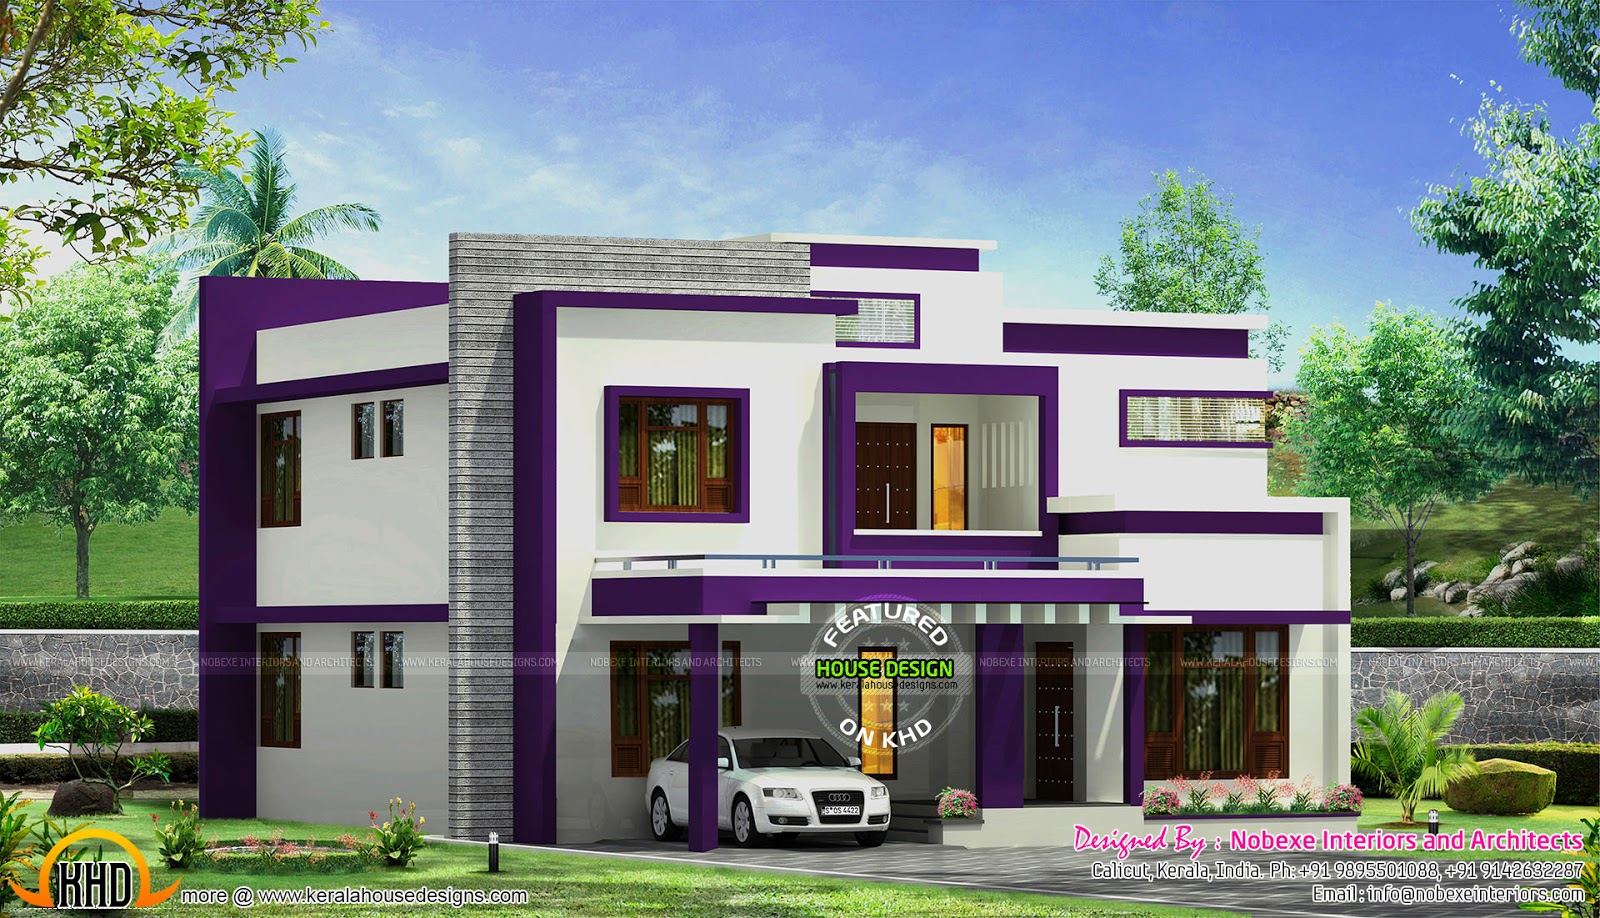 Contemporary home design by nobexe interiors kerala home for Home design images modern